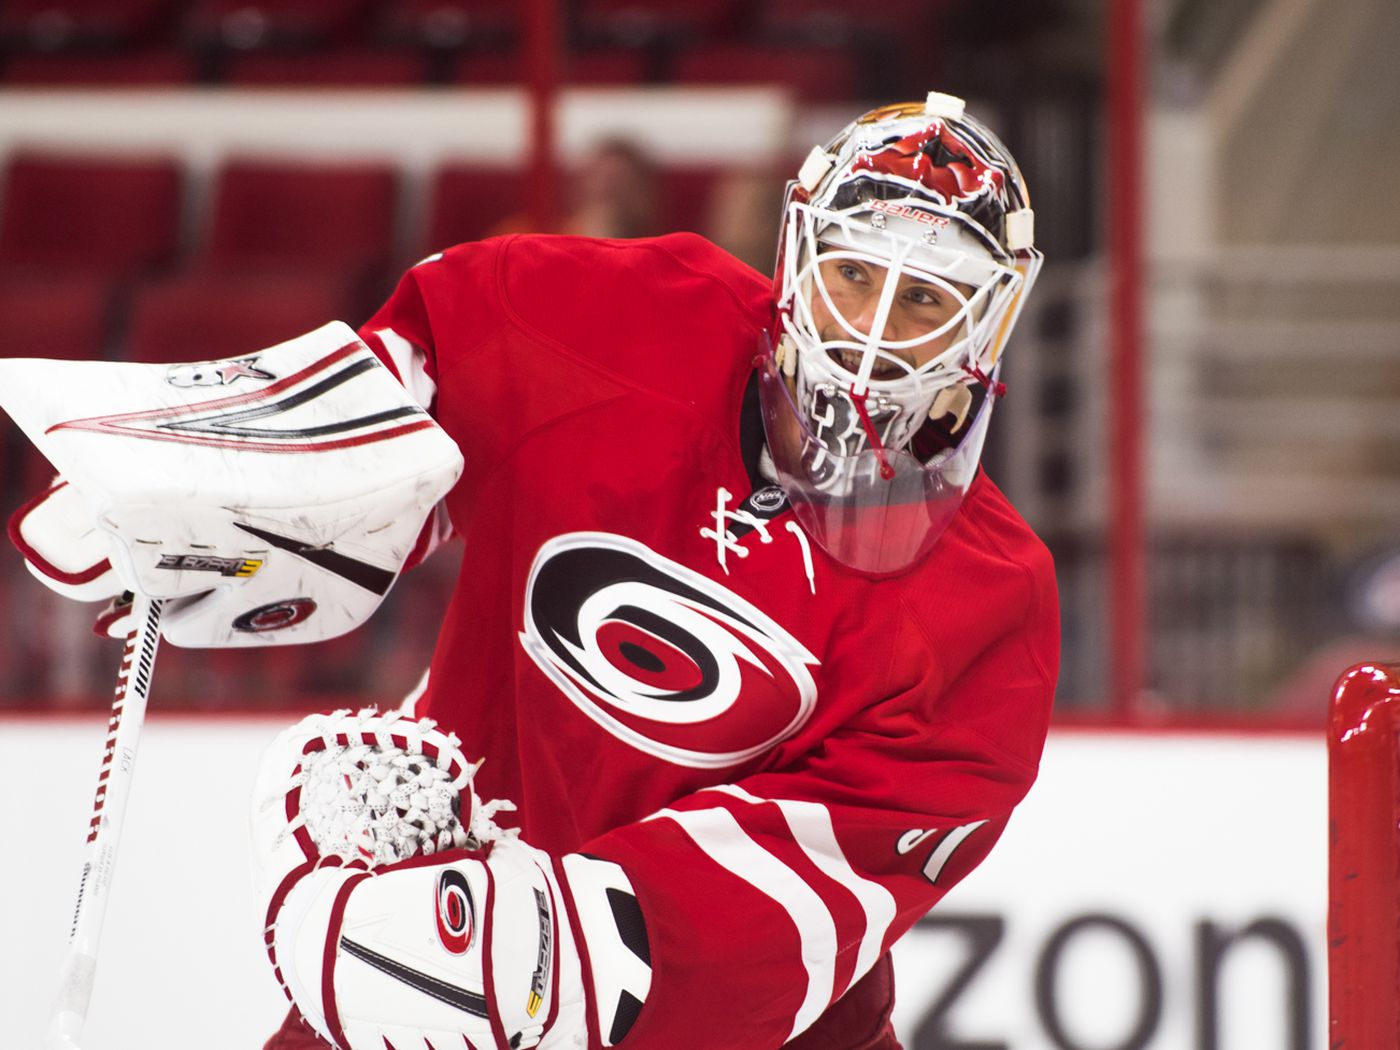 feff0cb34 About Last Season: Eddie Lack Performance Review and Grade - Canes Country